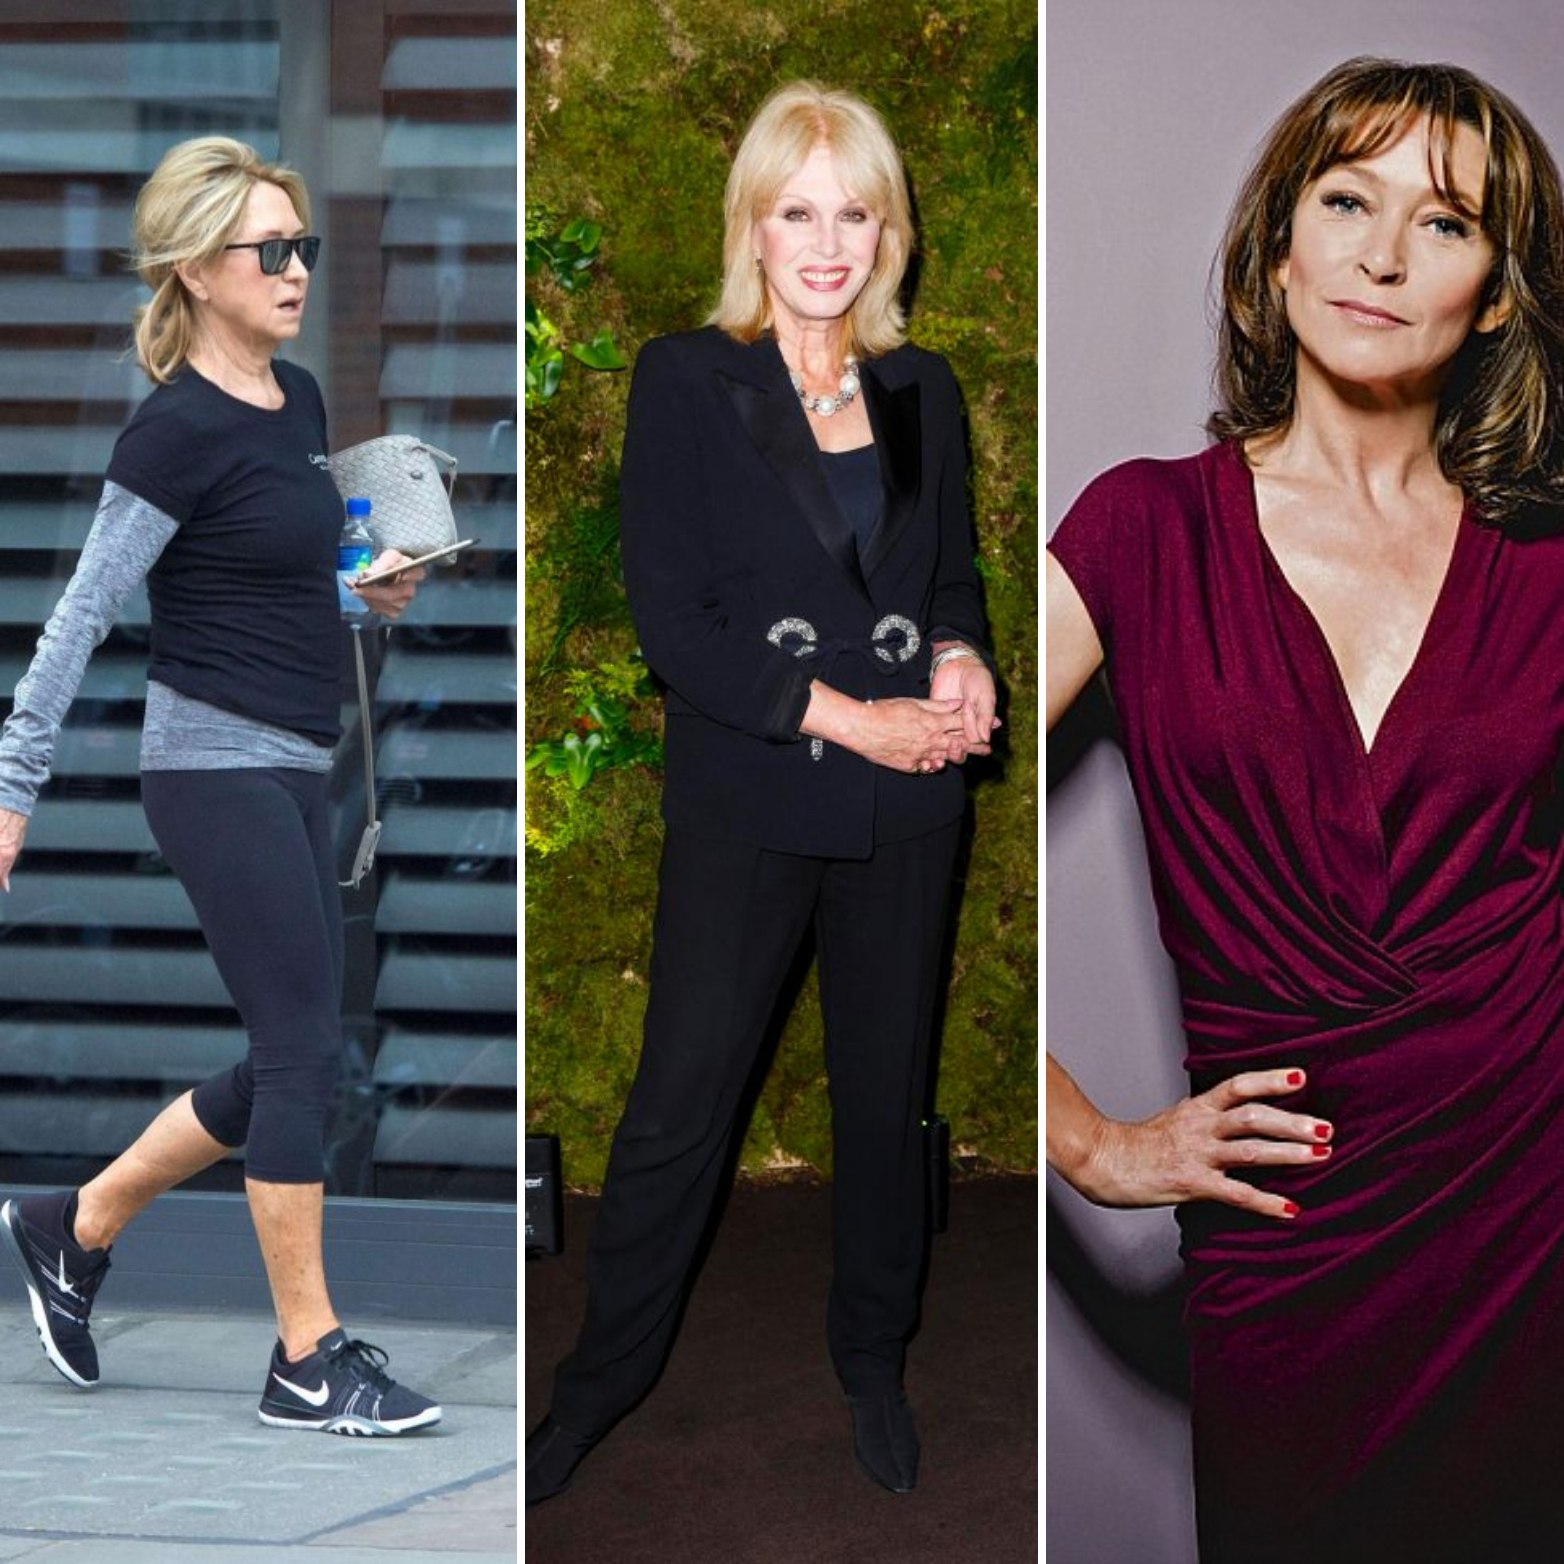 Age is no barrier to having great posture. Just look at actresses Felicity Kendal, Joanna Lumley and Cherie Lunghi